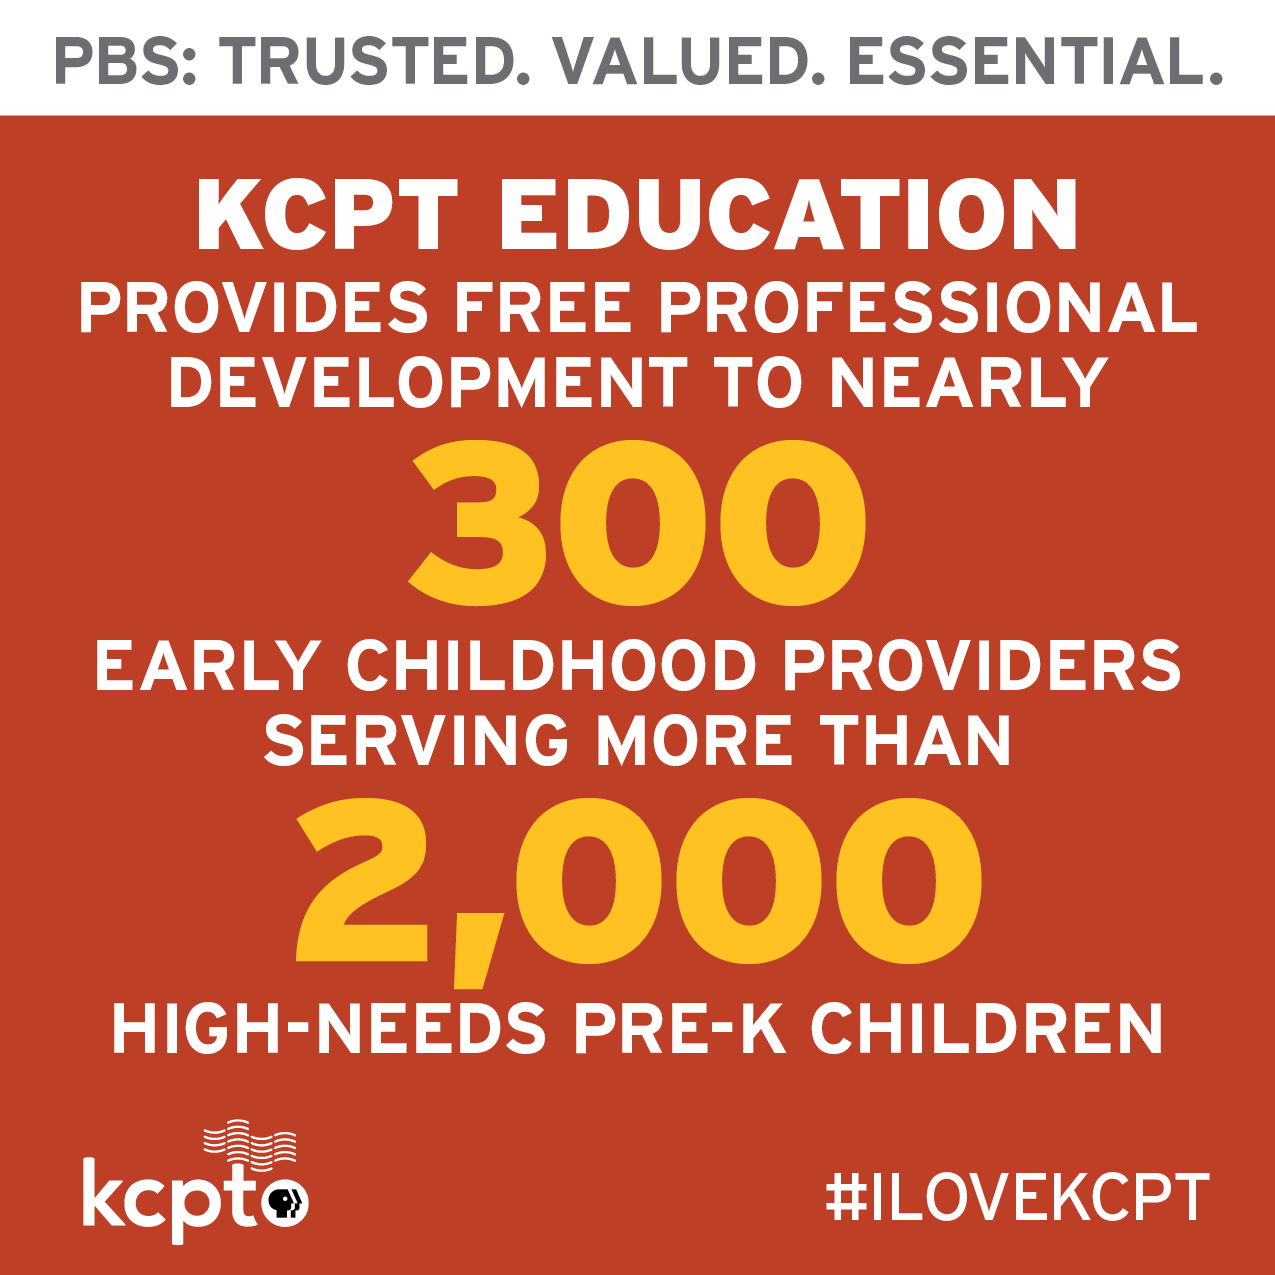 KCPT Education provides free professional development to nearly 300 early childhood providers, serving more than two thousand high-needs Pre-K children.